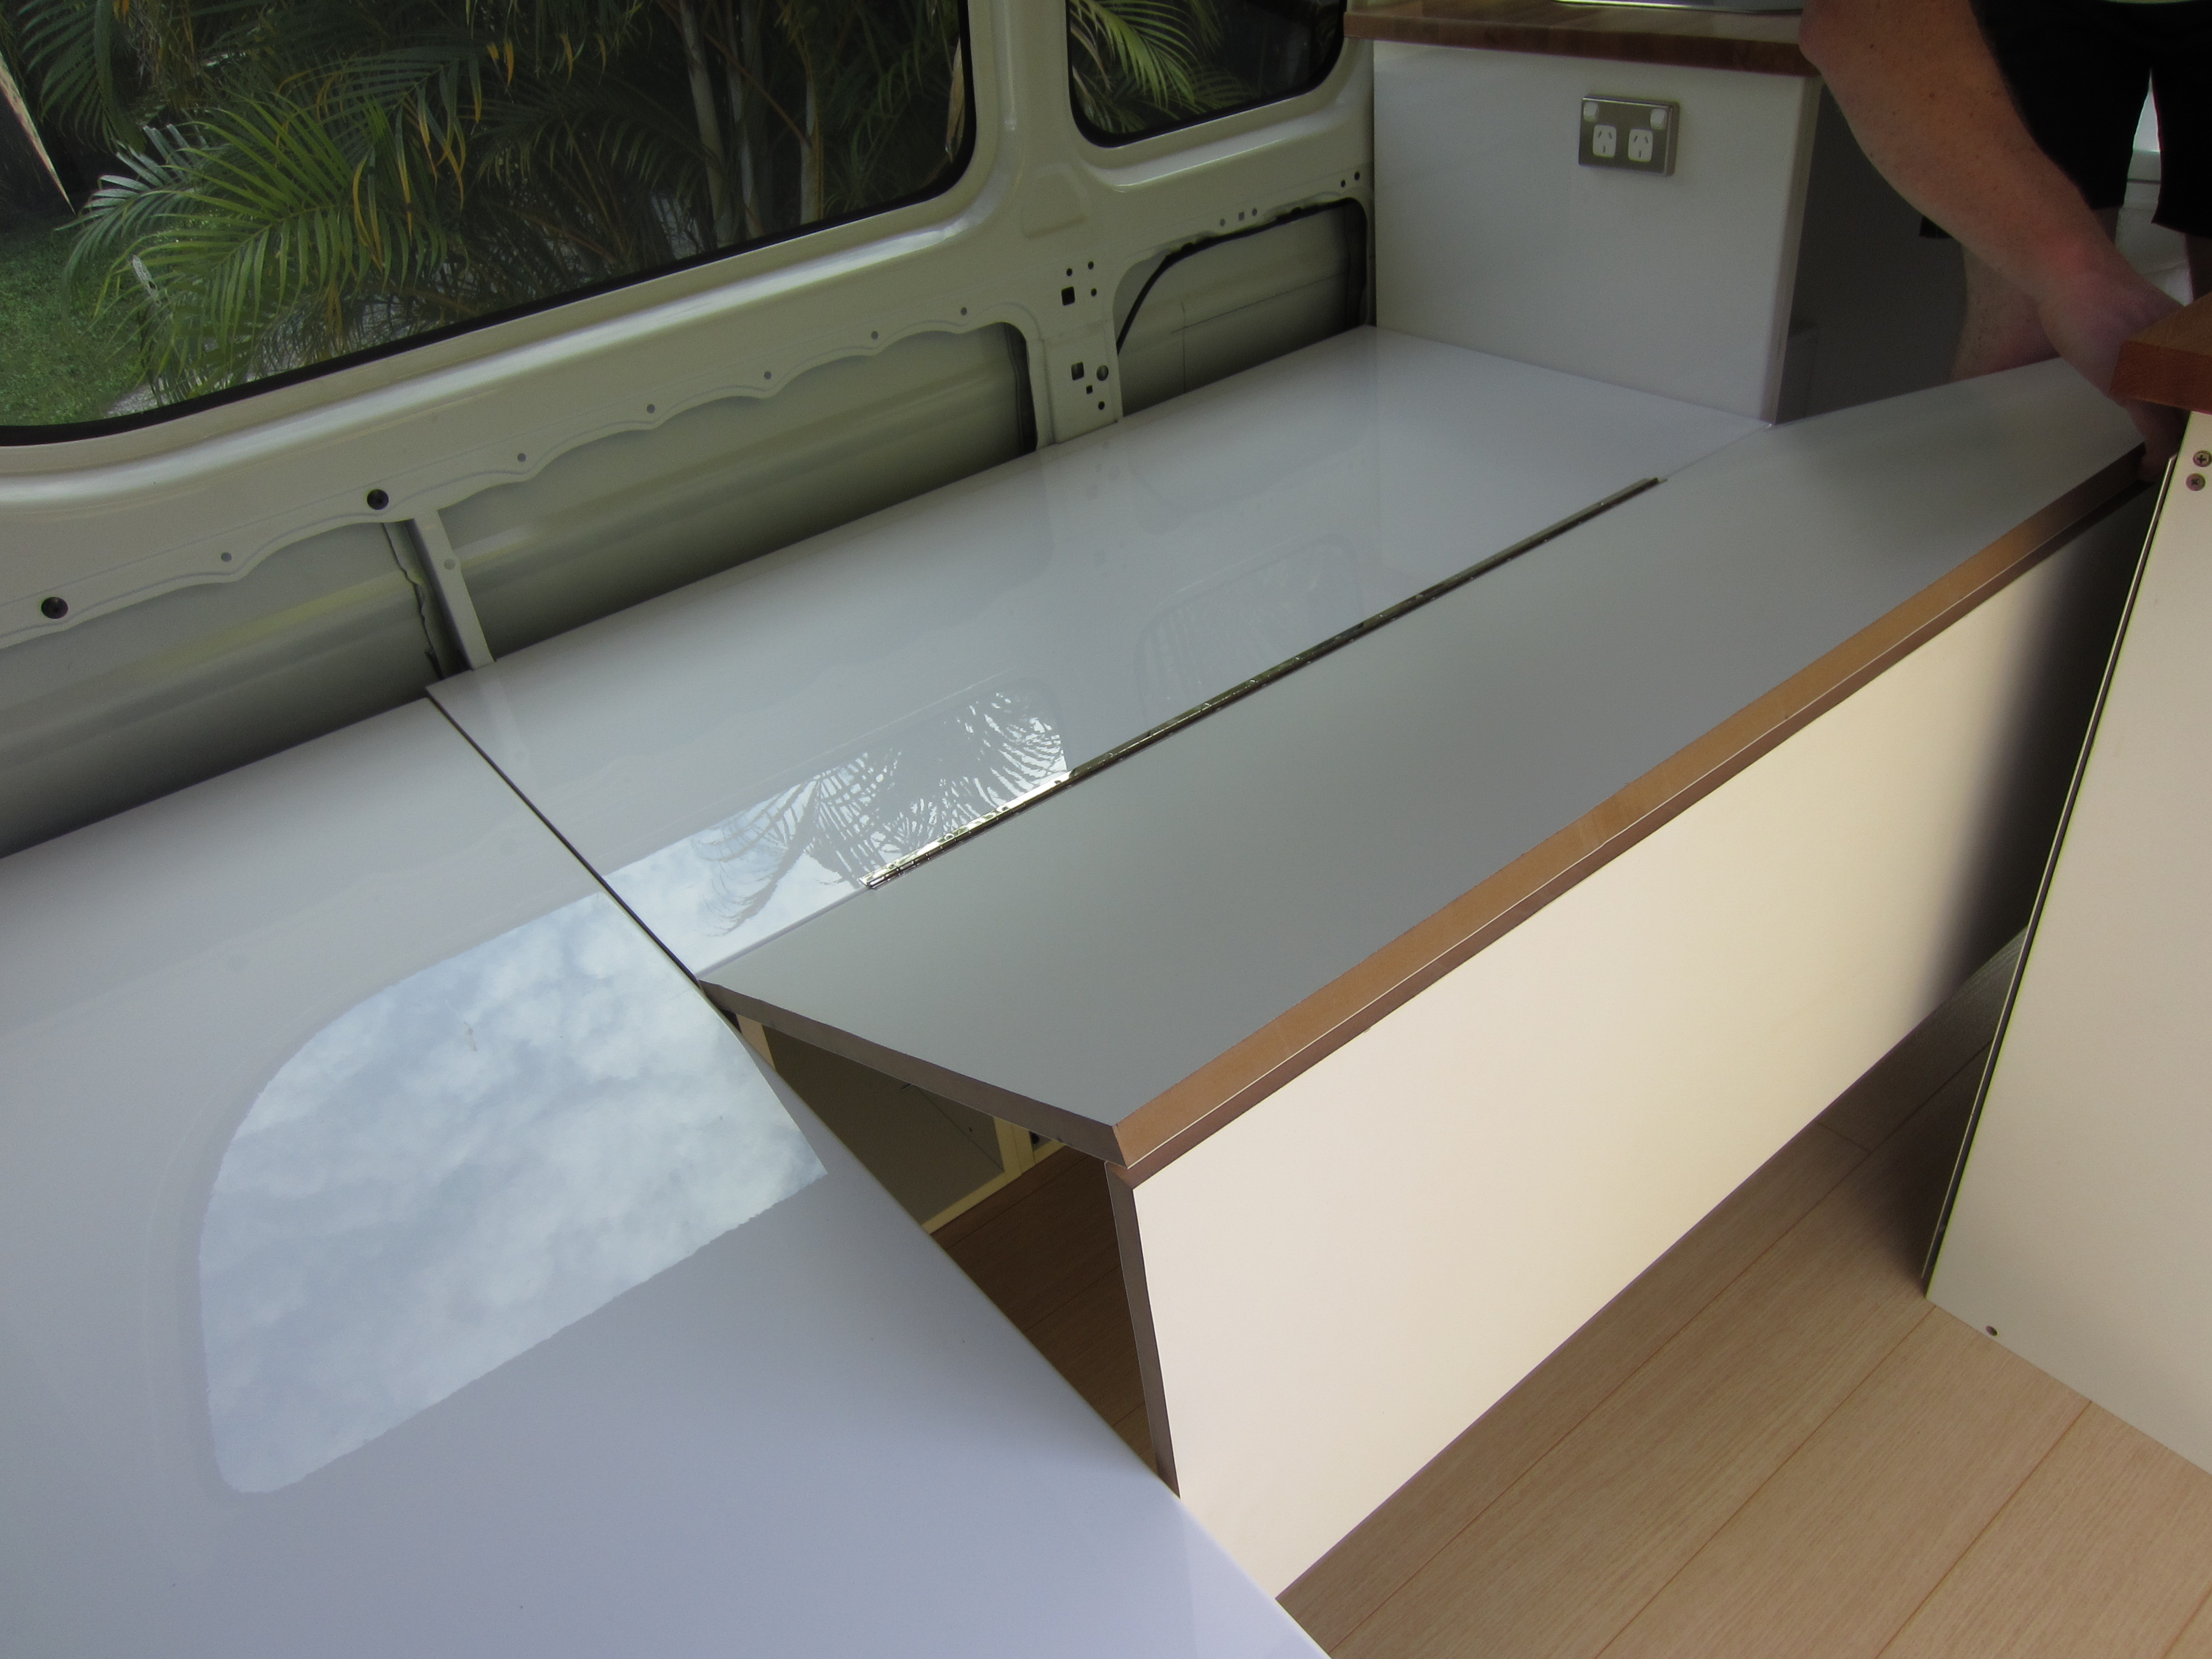 Campervan Seating Bed Conversion The Campervan Converts